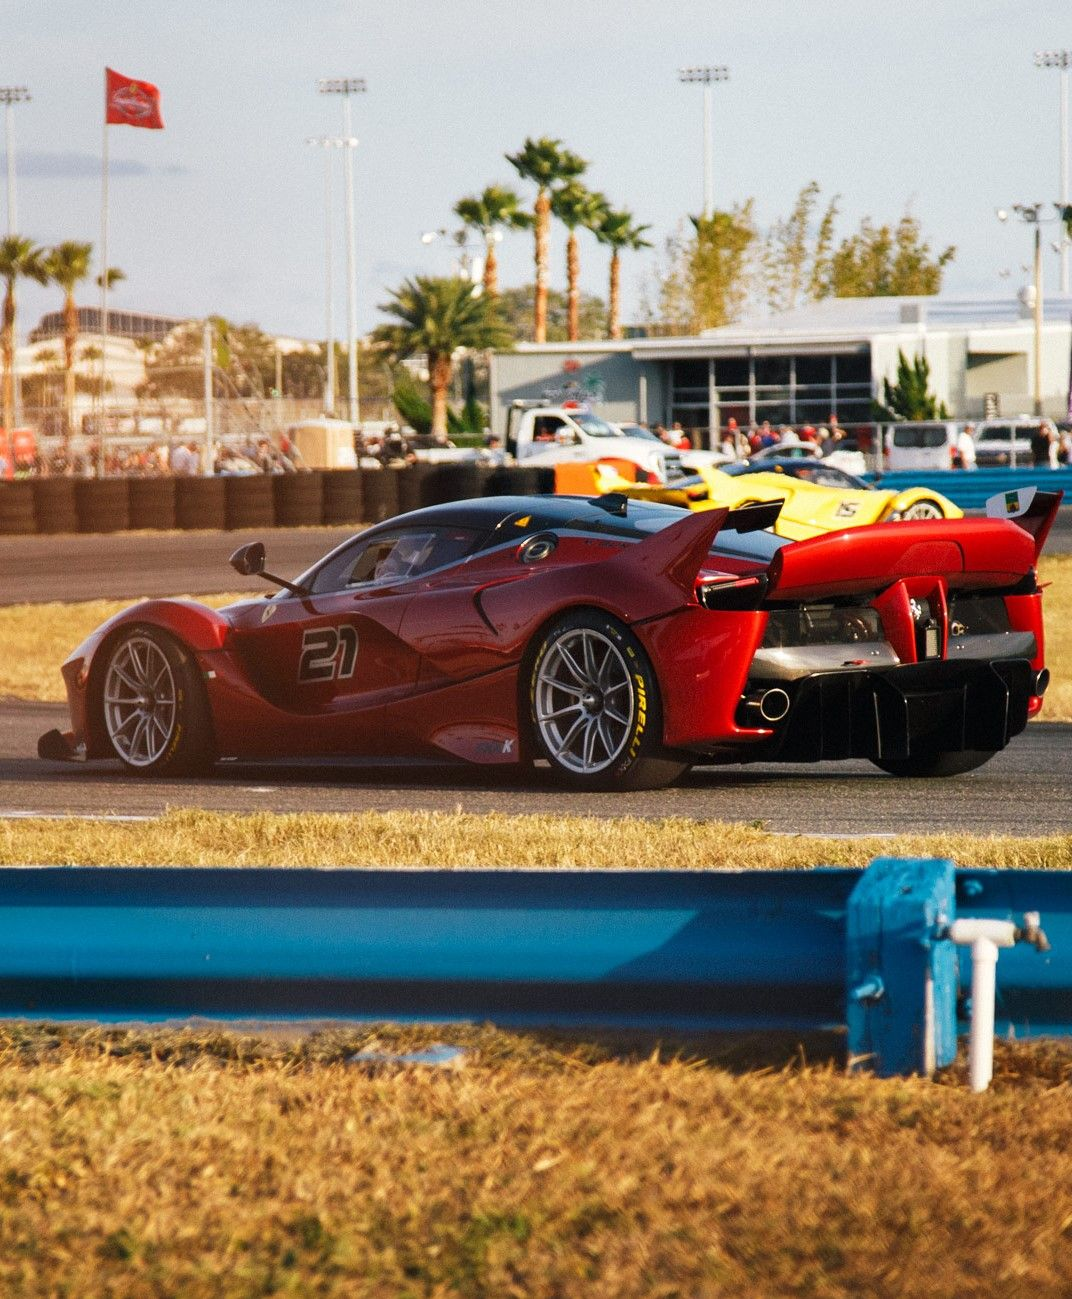 North America's First Ferrari Finali Mondiali Has to be Seen to be Believed